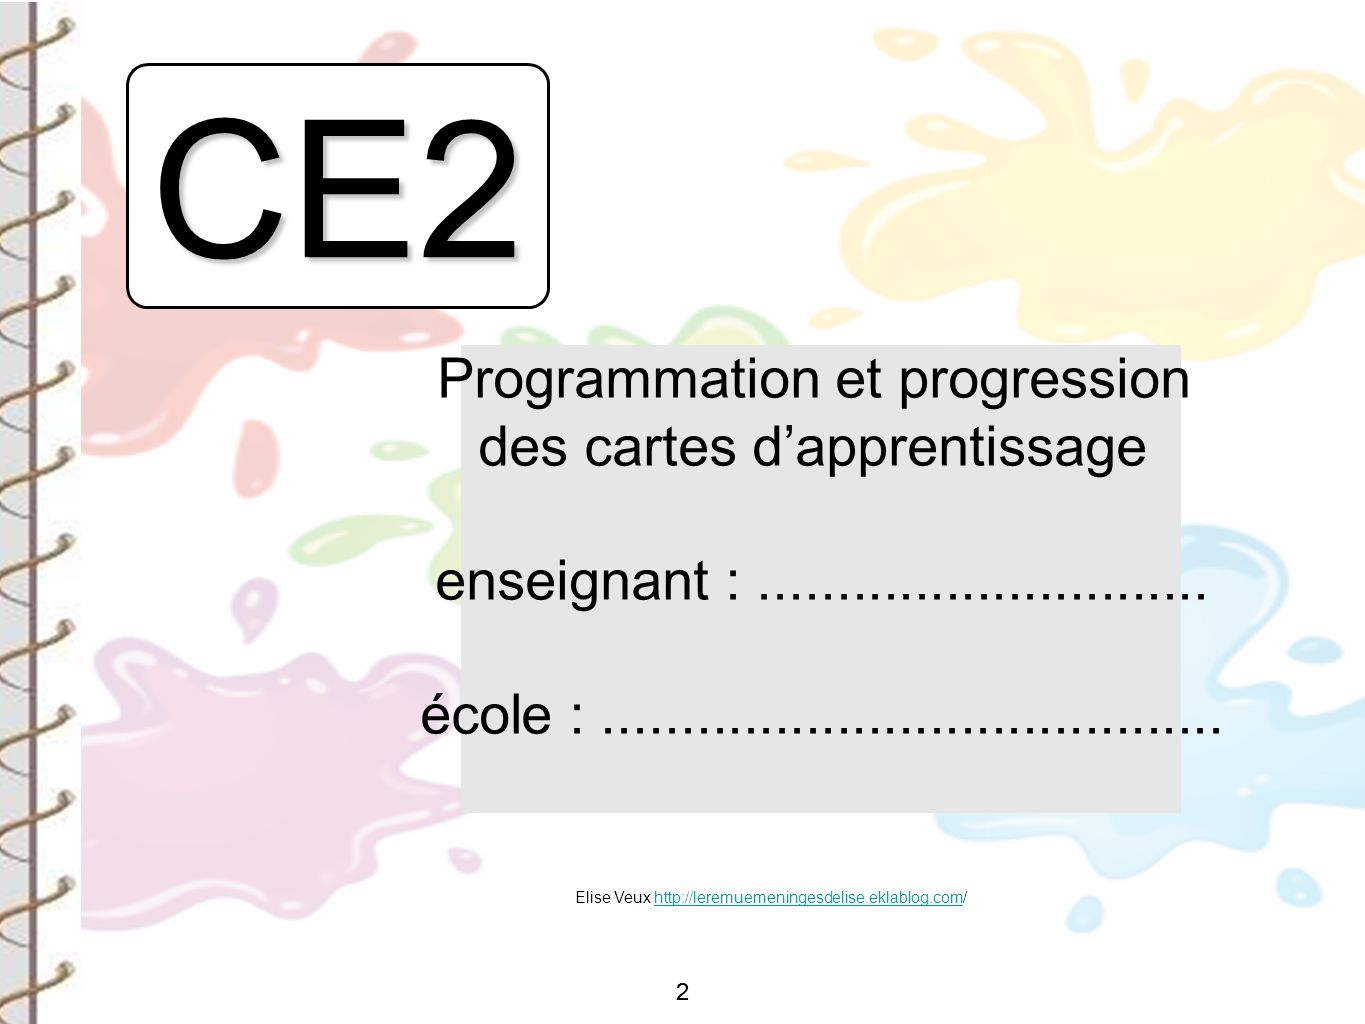 CE2 Programmation et progression des cartes d'apprentissage